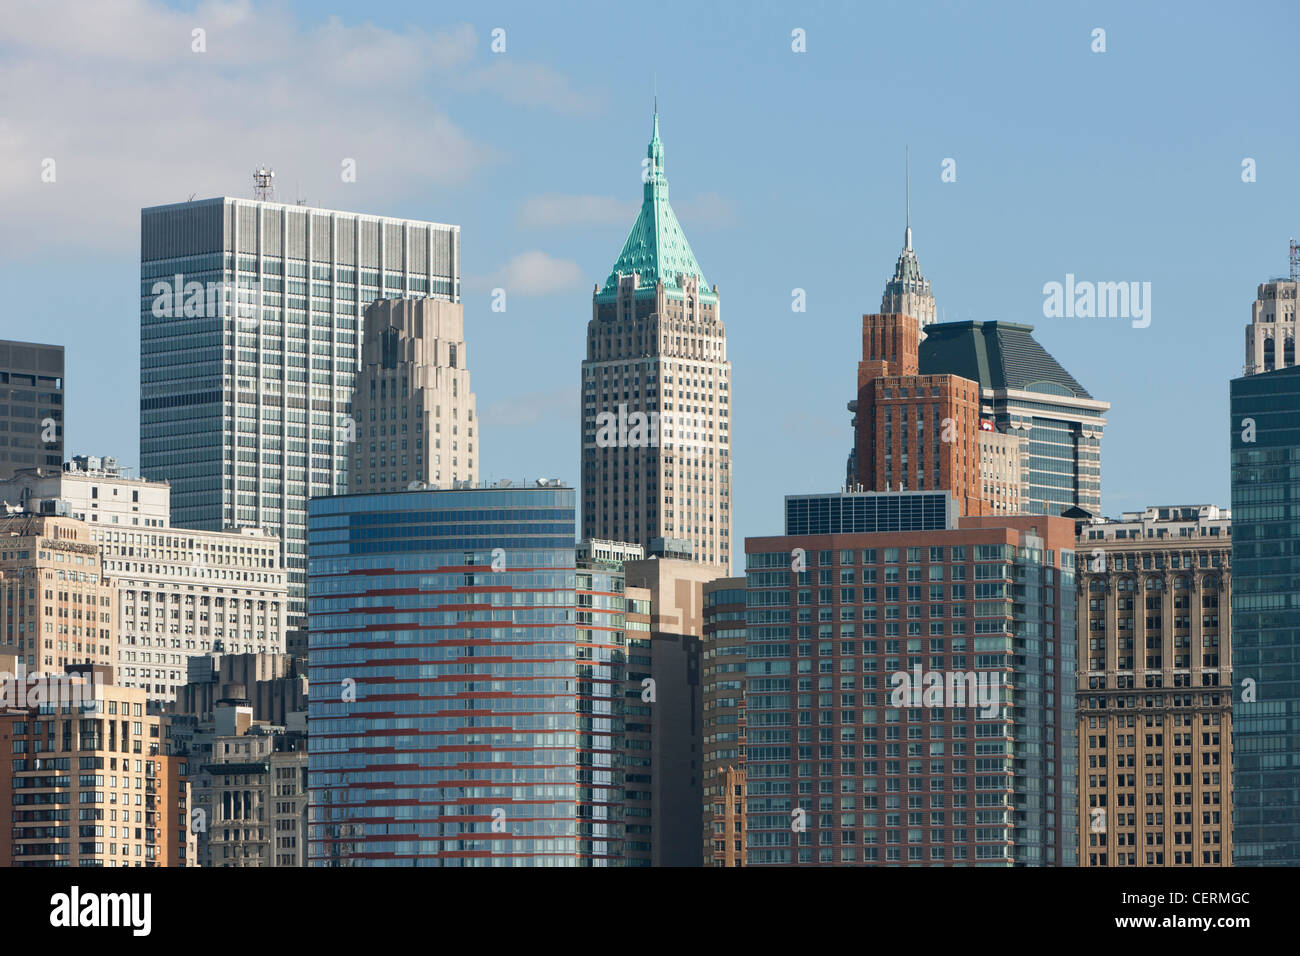 40 Wall Street NycStock Photos and Images